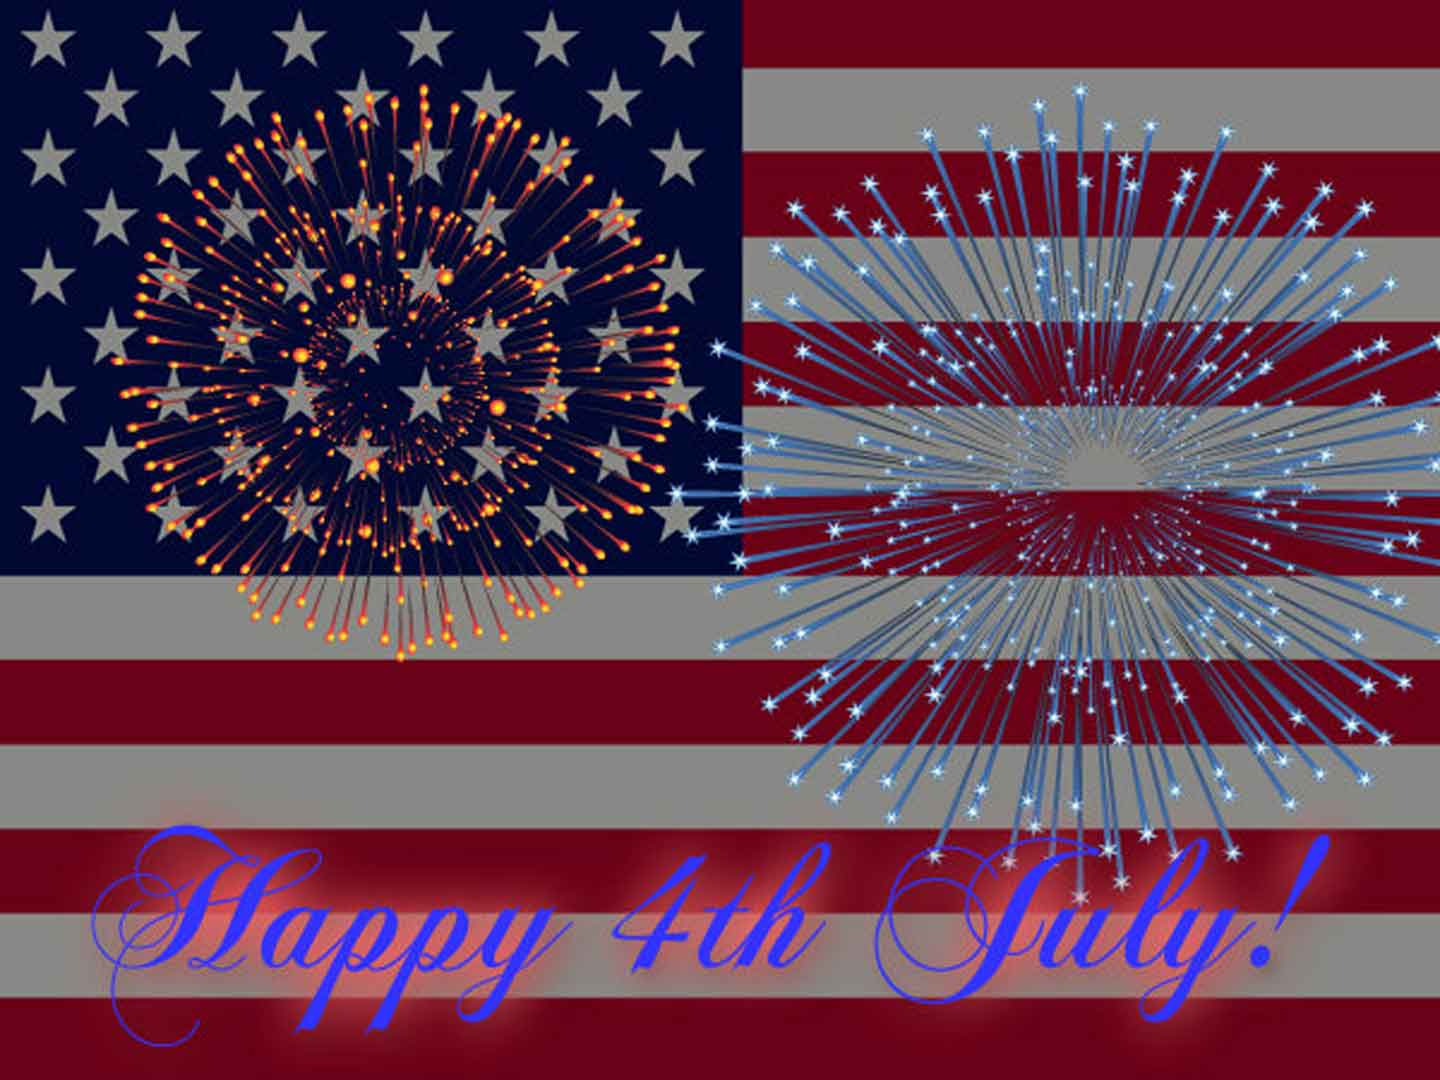 Free Wallpapers - Happy 4th of July Picture wallpaper